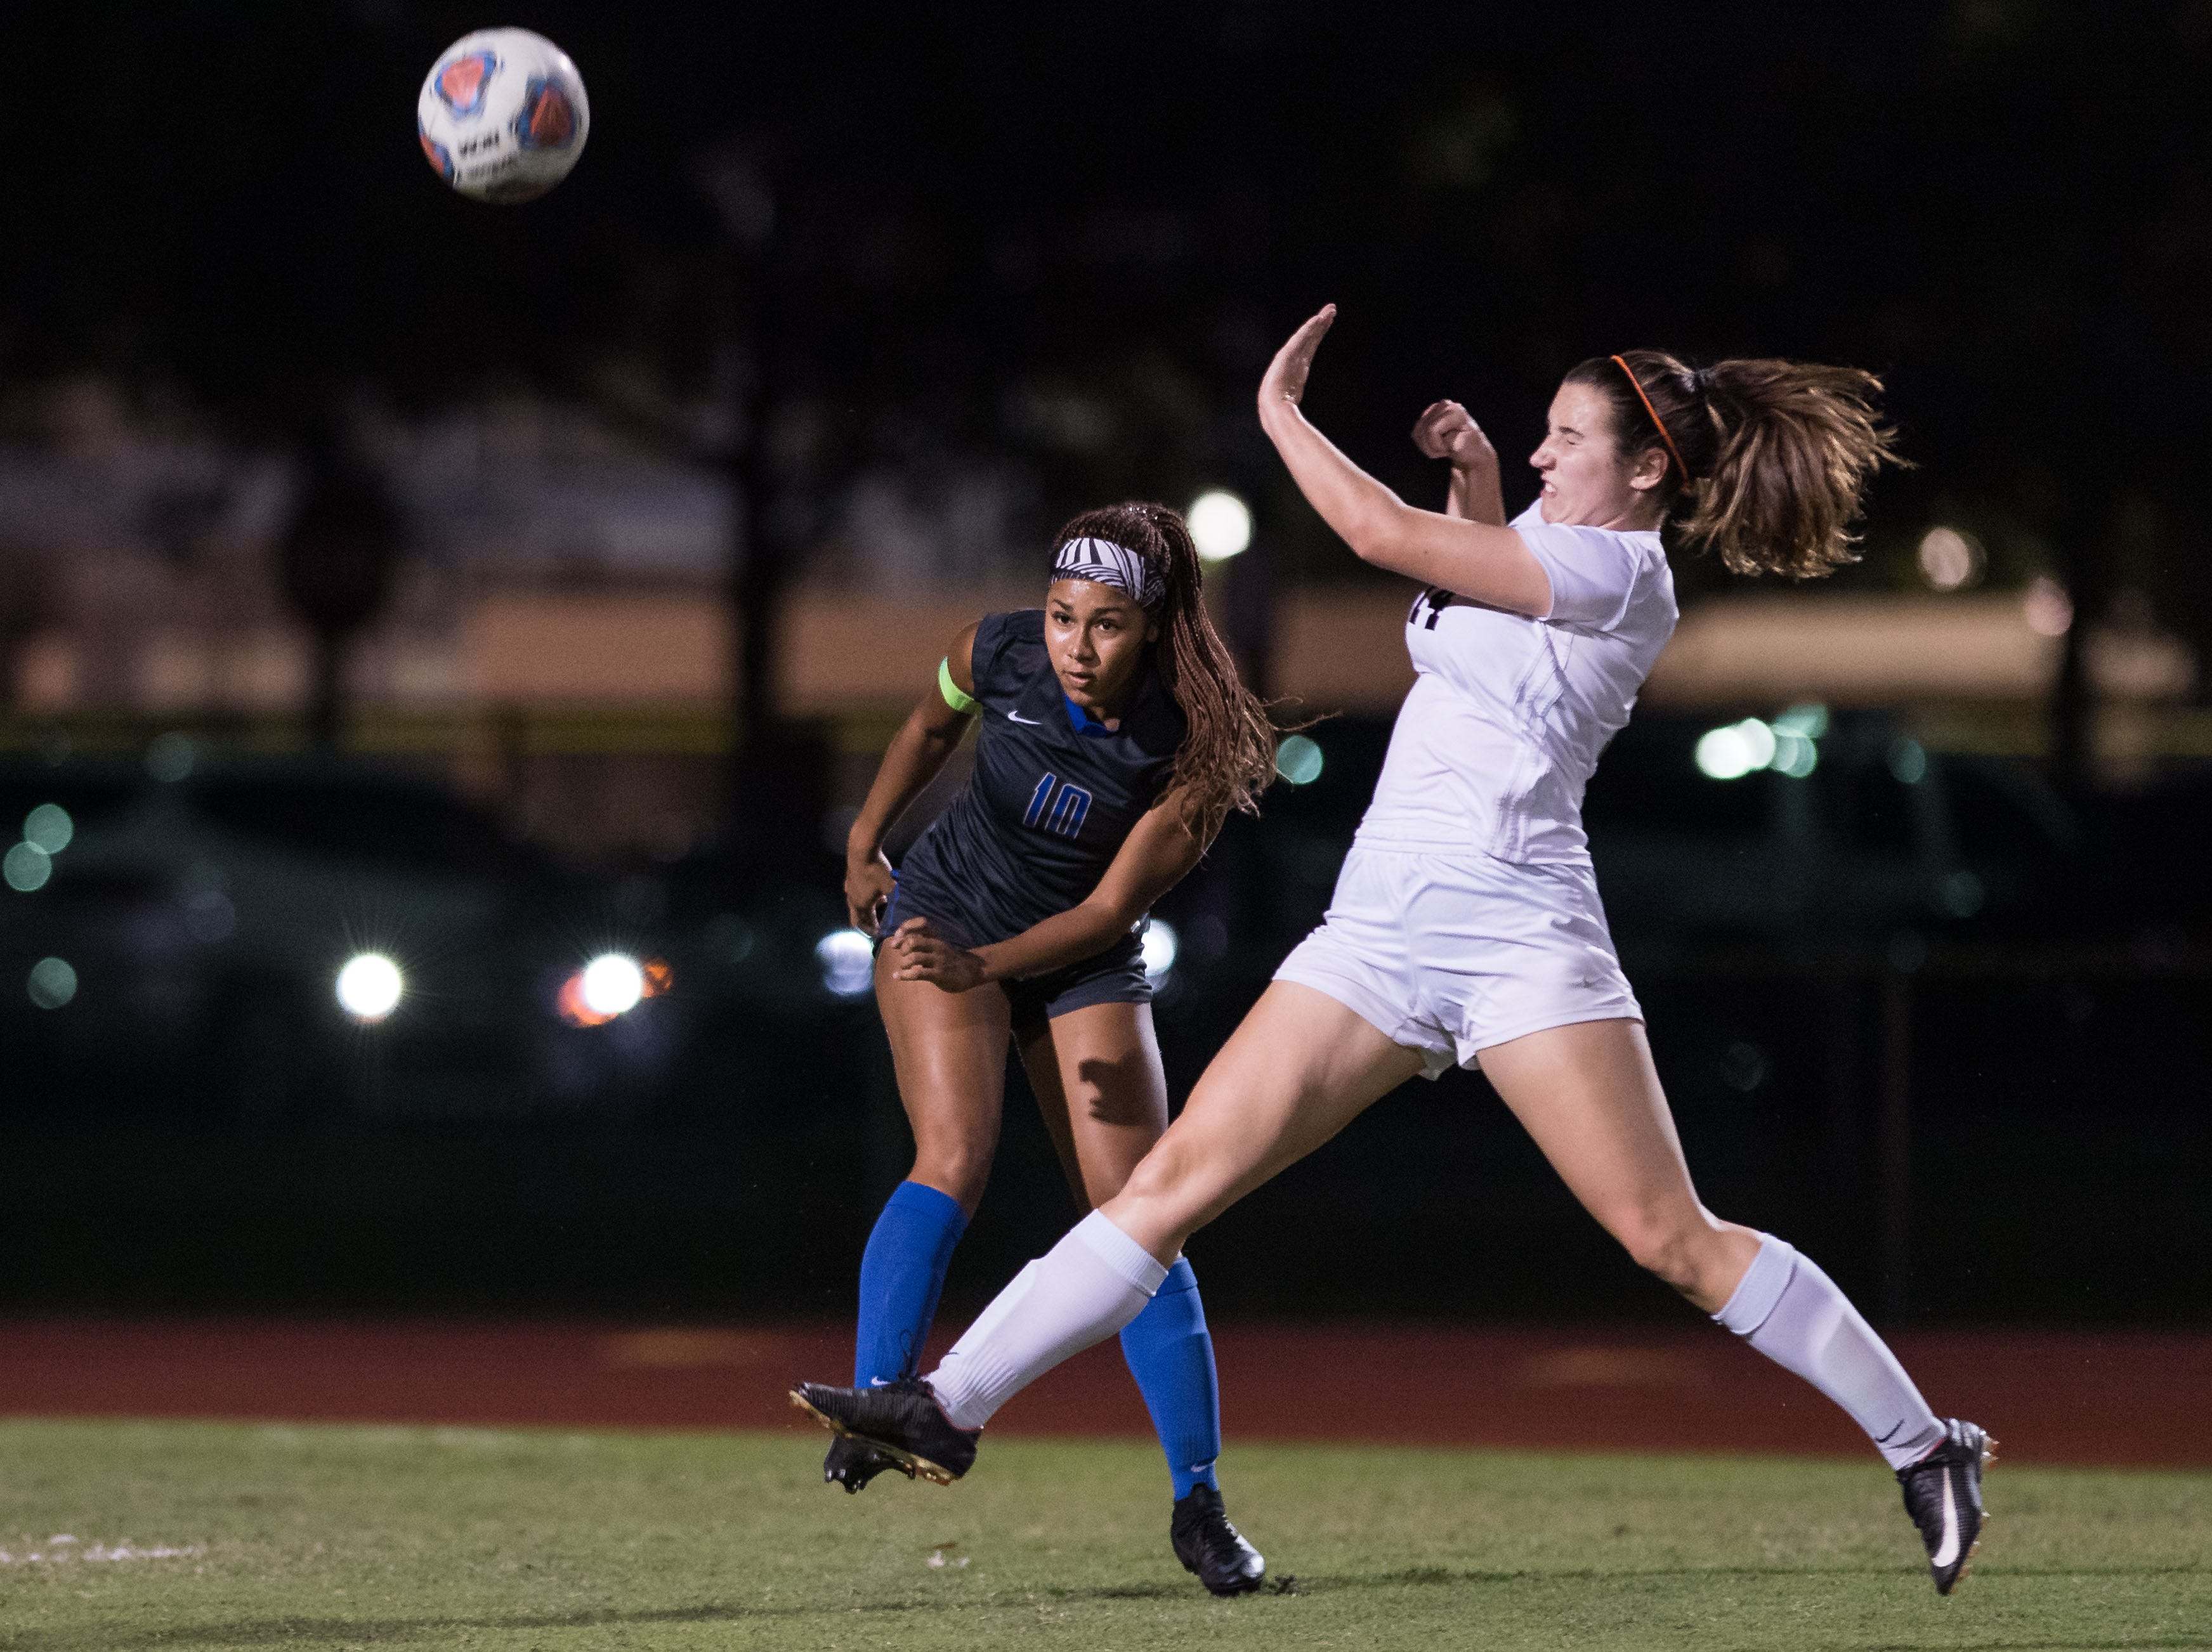 Cypress Bay's Maya Gordon clears the ball away from Vero Beach's Emma Romans during the first half of the high school girls soccer Class 5A state semifinal game Friday, Feb. 15, 2019, at Cypress Bay High School in Weston.